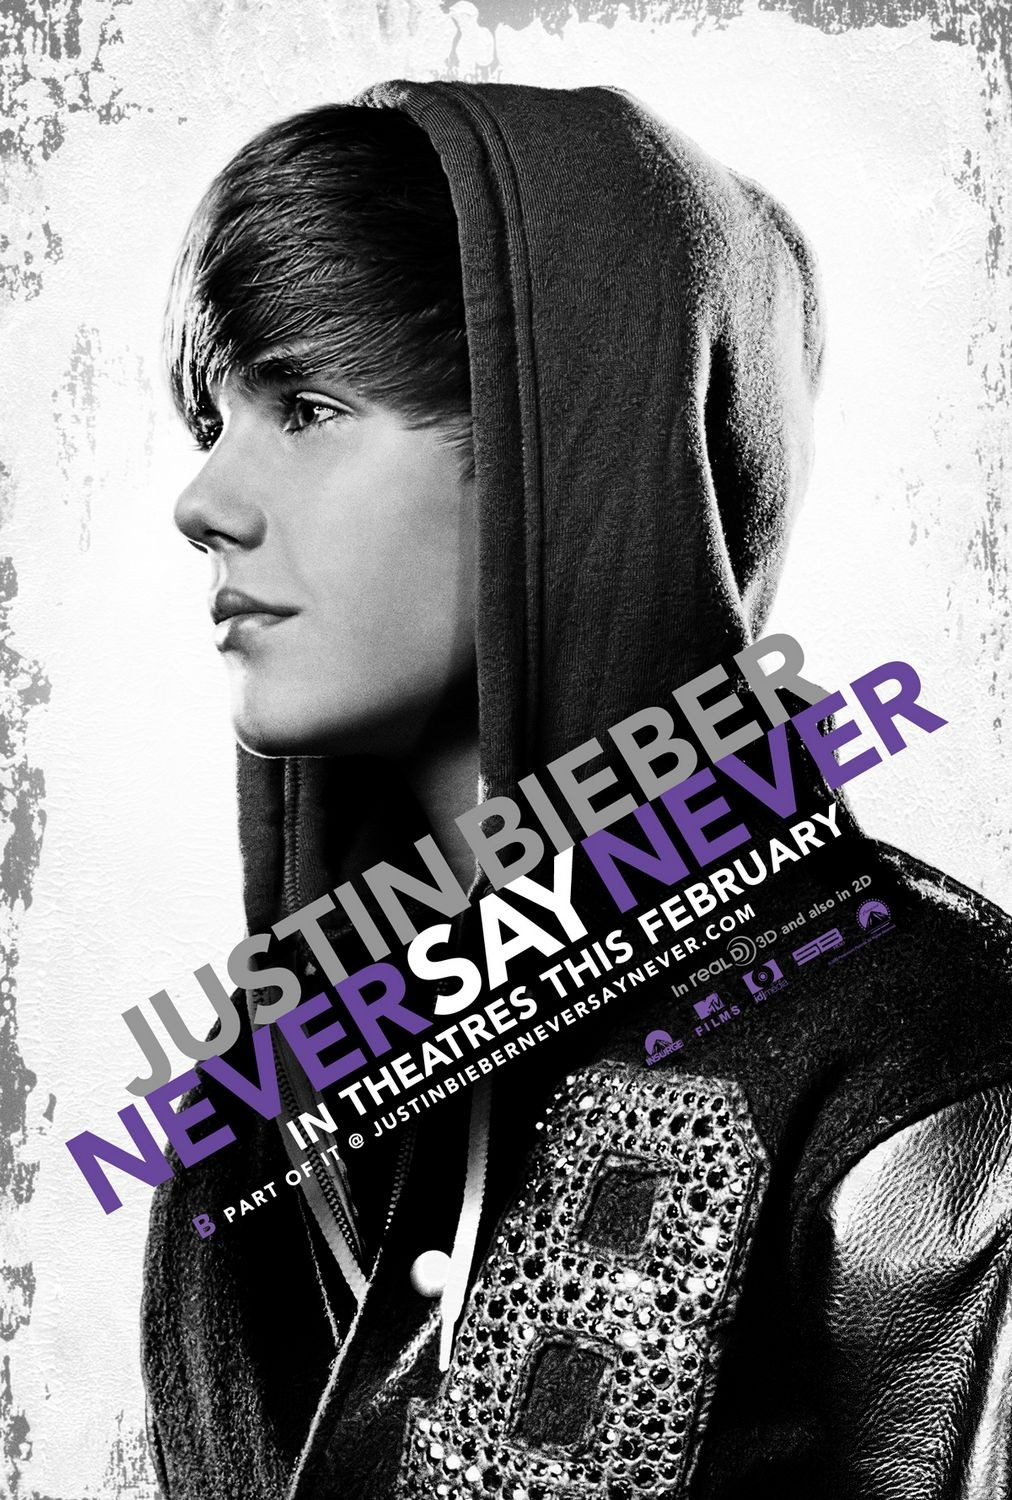 [RG] Justin Bieber : Never Say Never [DVDRiP]